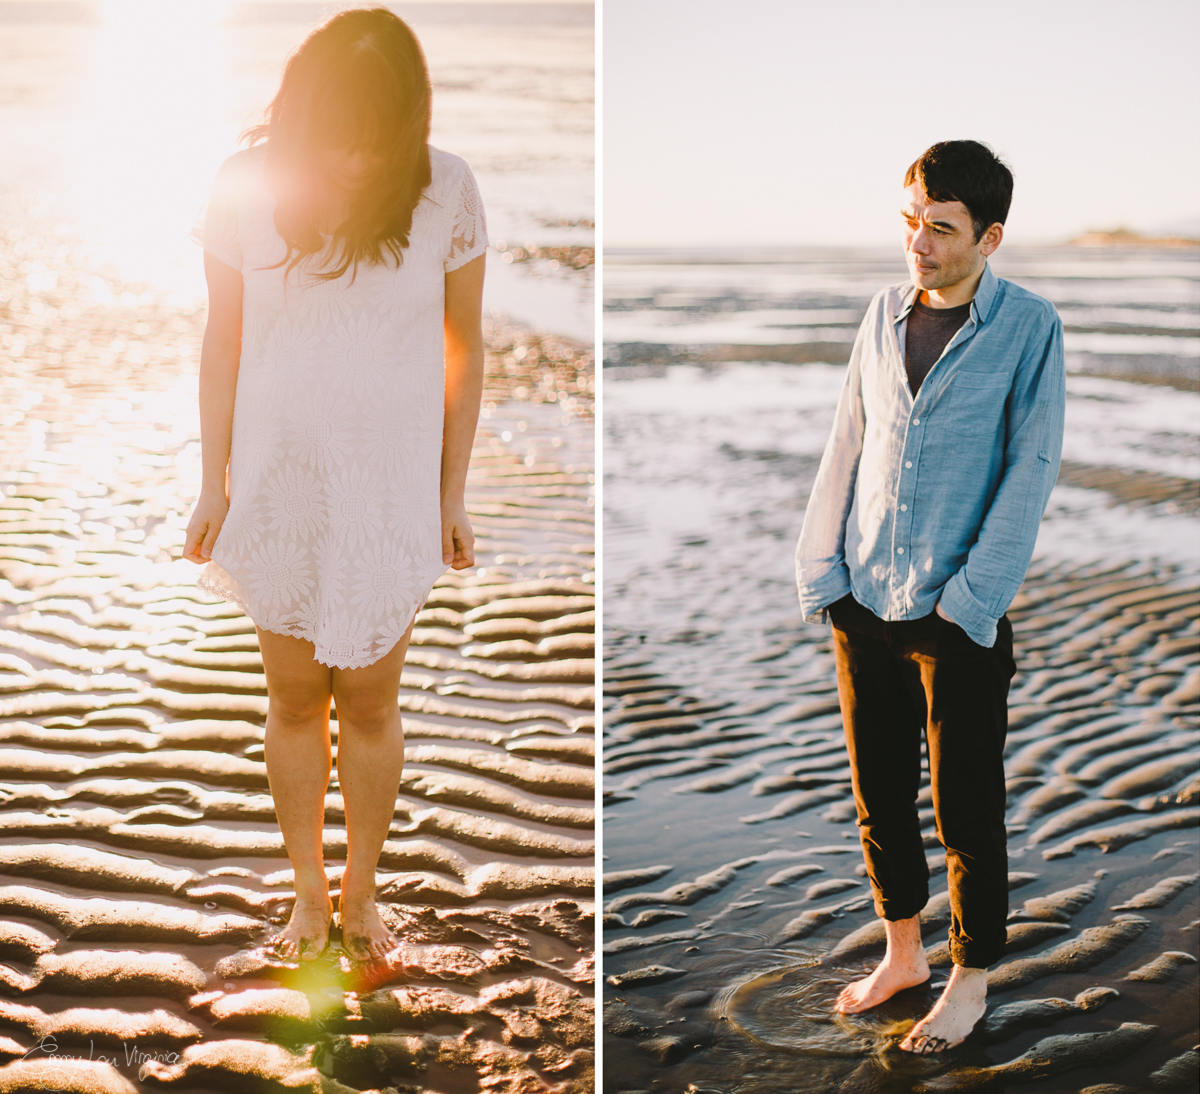 Vancouver Iona Beach Maternity Photographer - Emmy Lou Virginia Photography-63.jpg